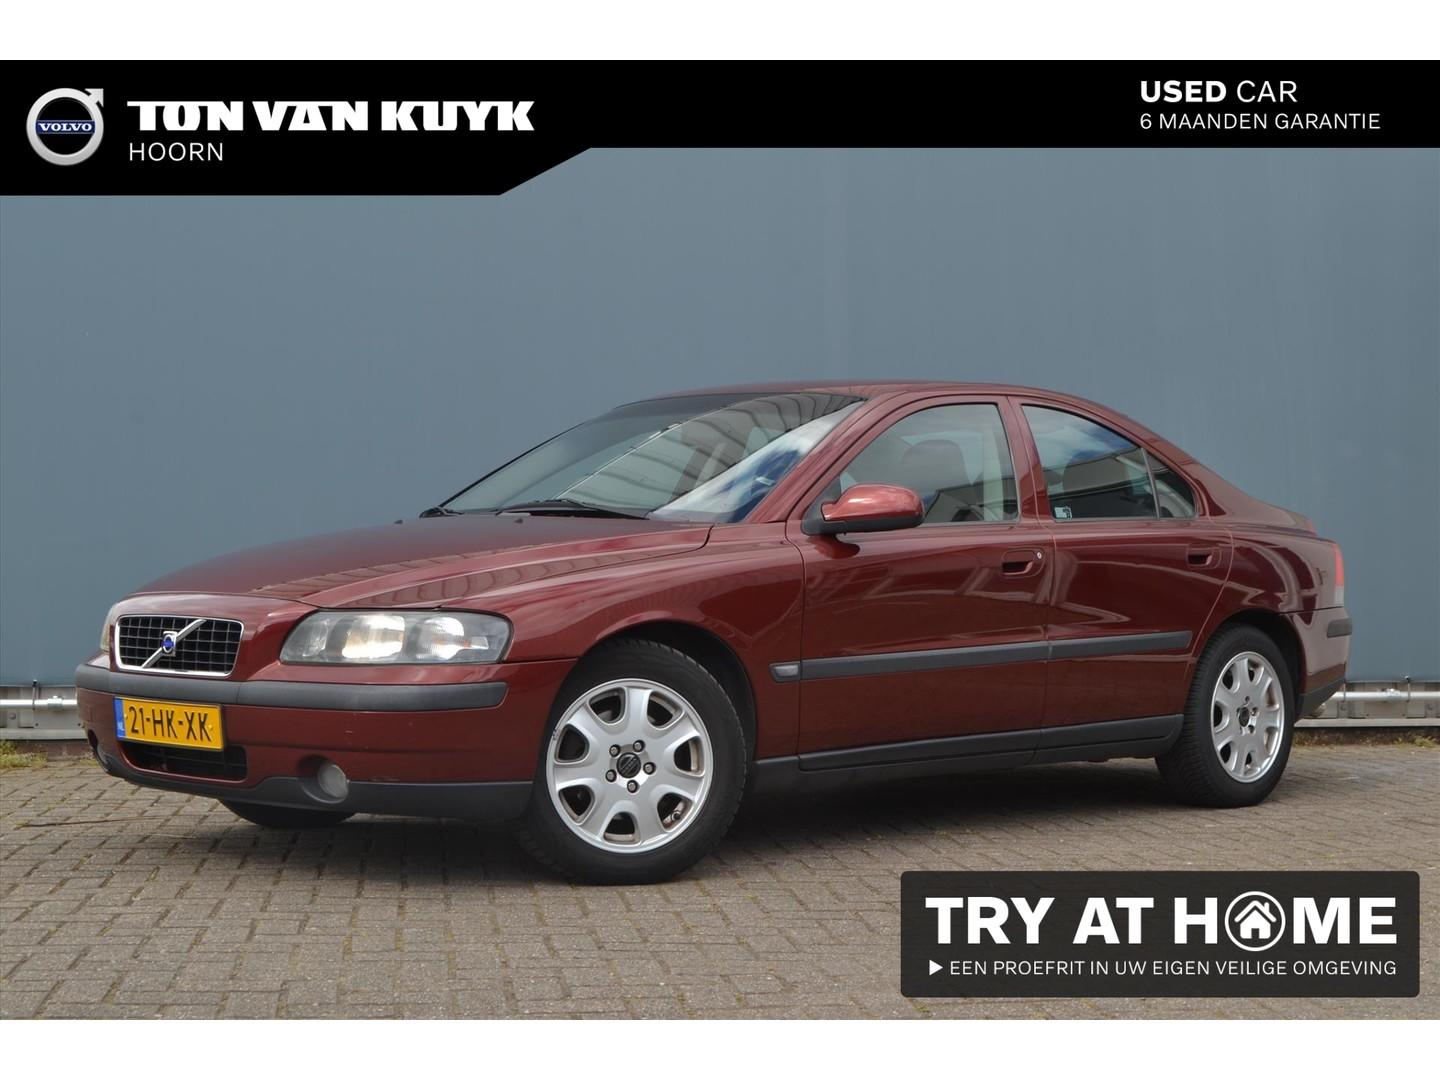 Volvo S60 2.4 170pk automaat intro edition young timer